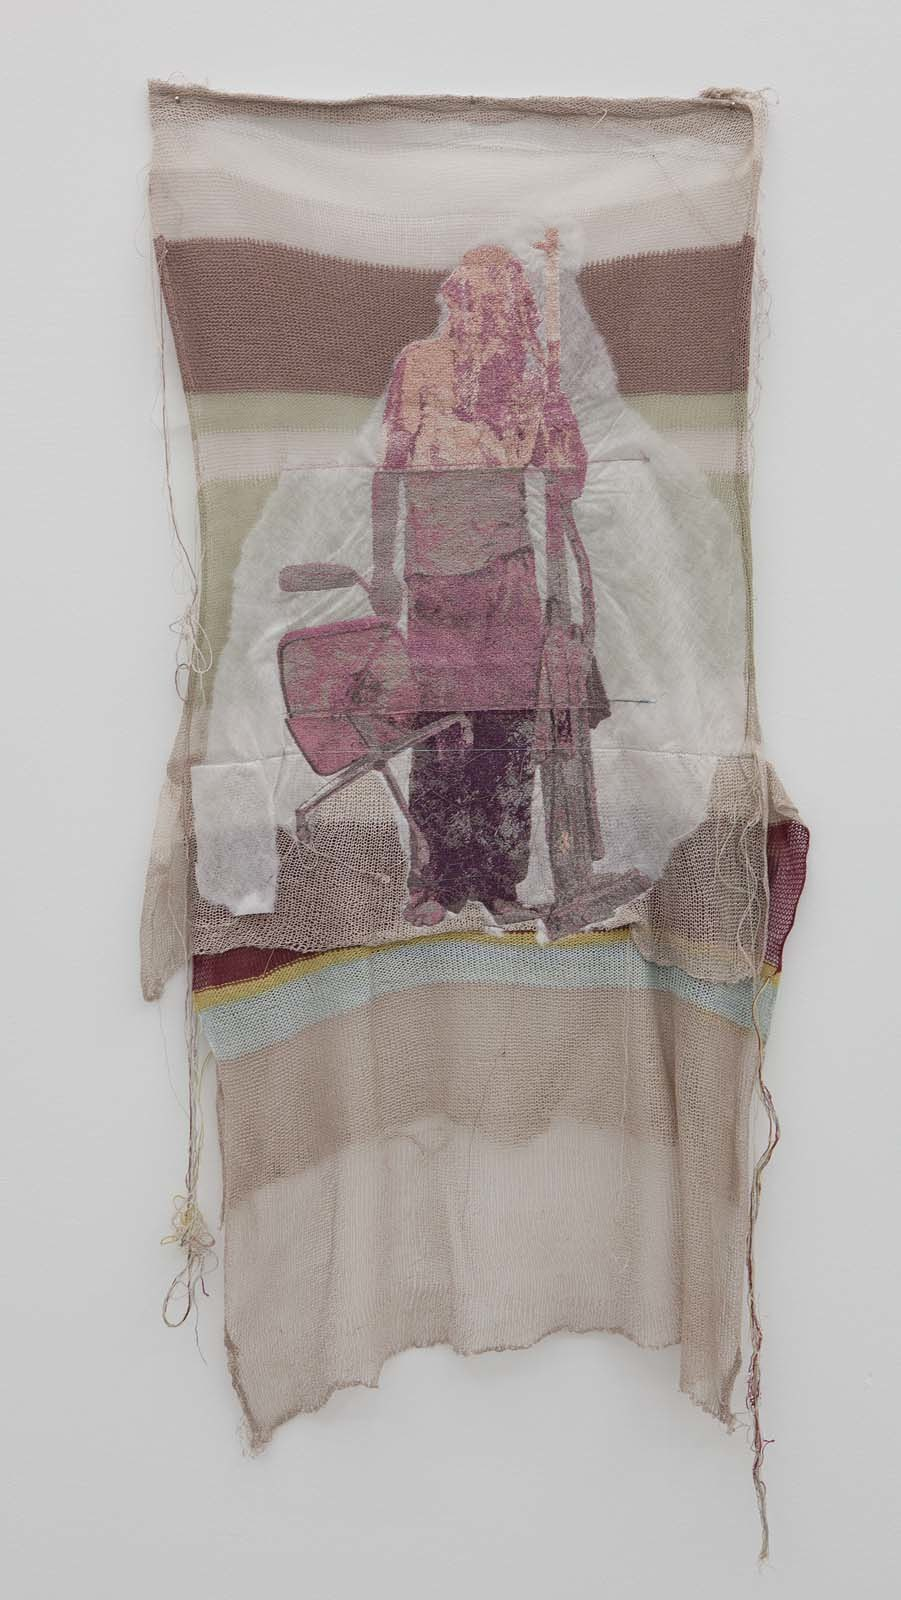 Kontrapost (Martin as Percht), knitted, 2010, embroidery on various textiles